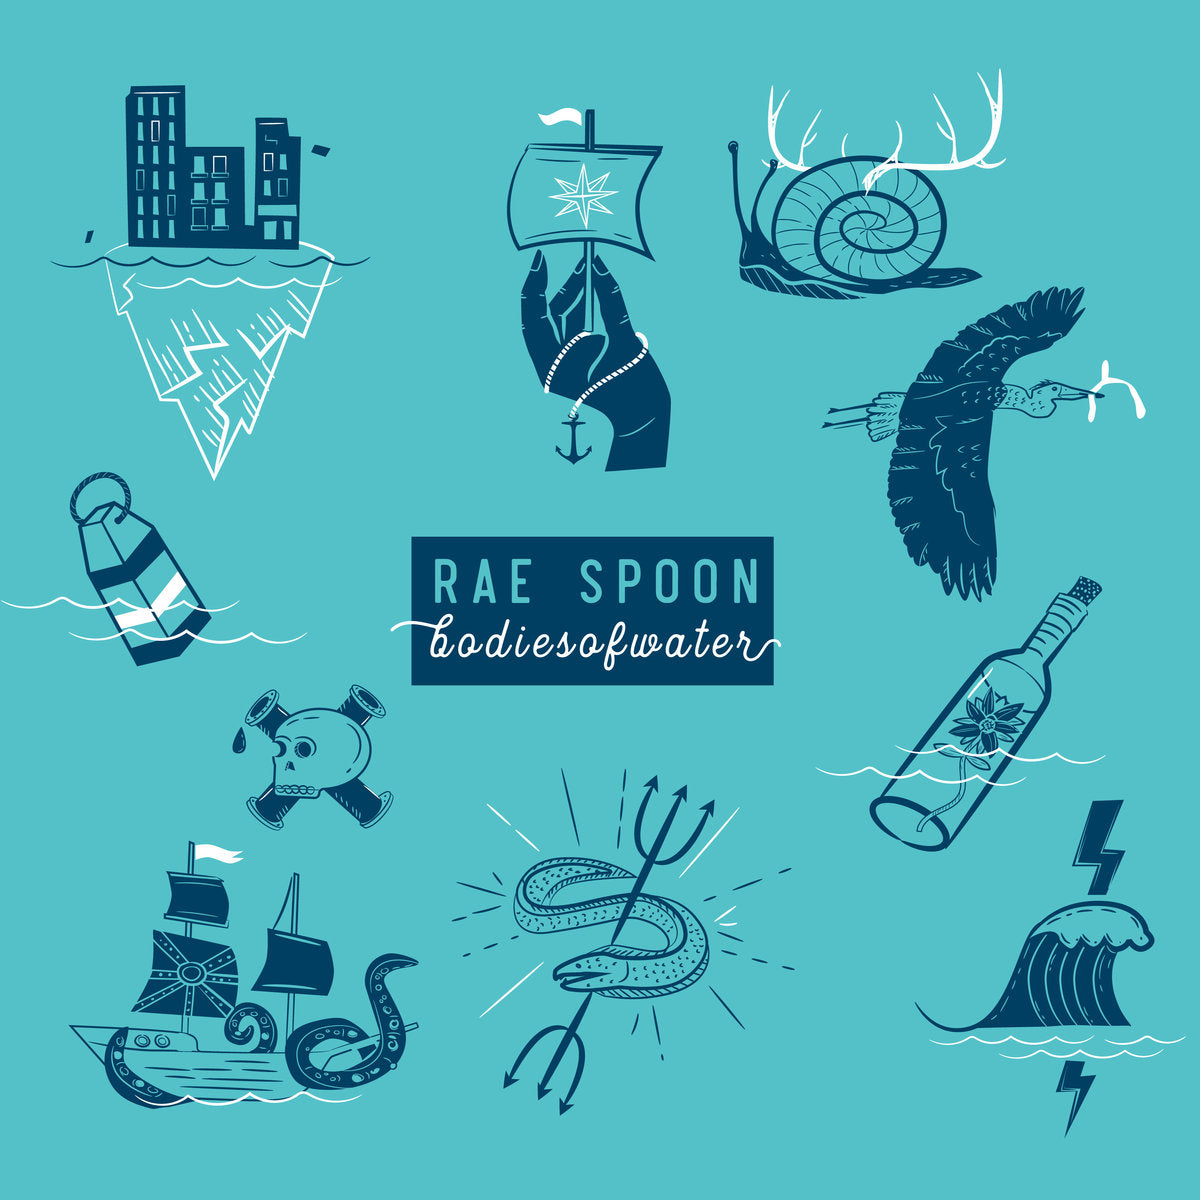 bodiesofwater by Rae Spoon